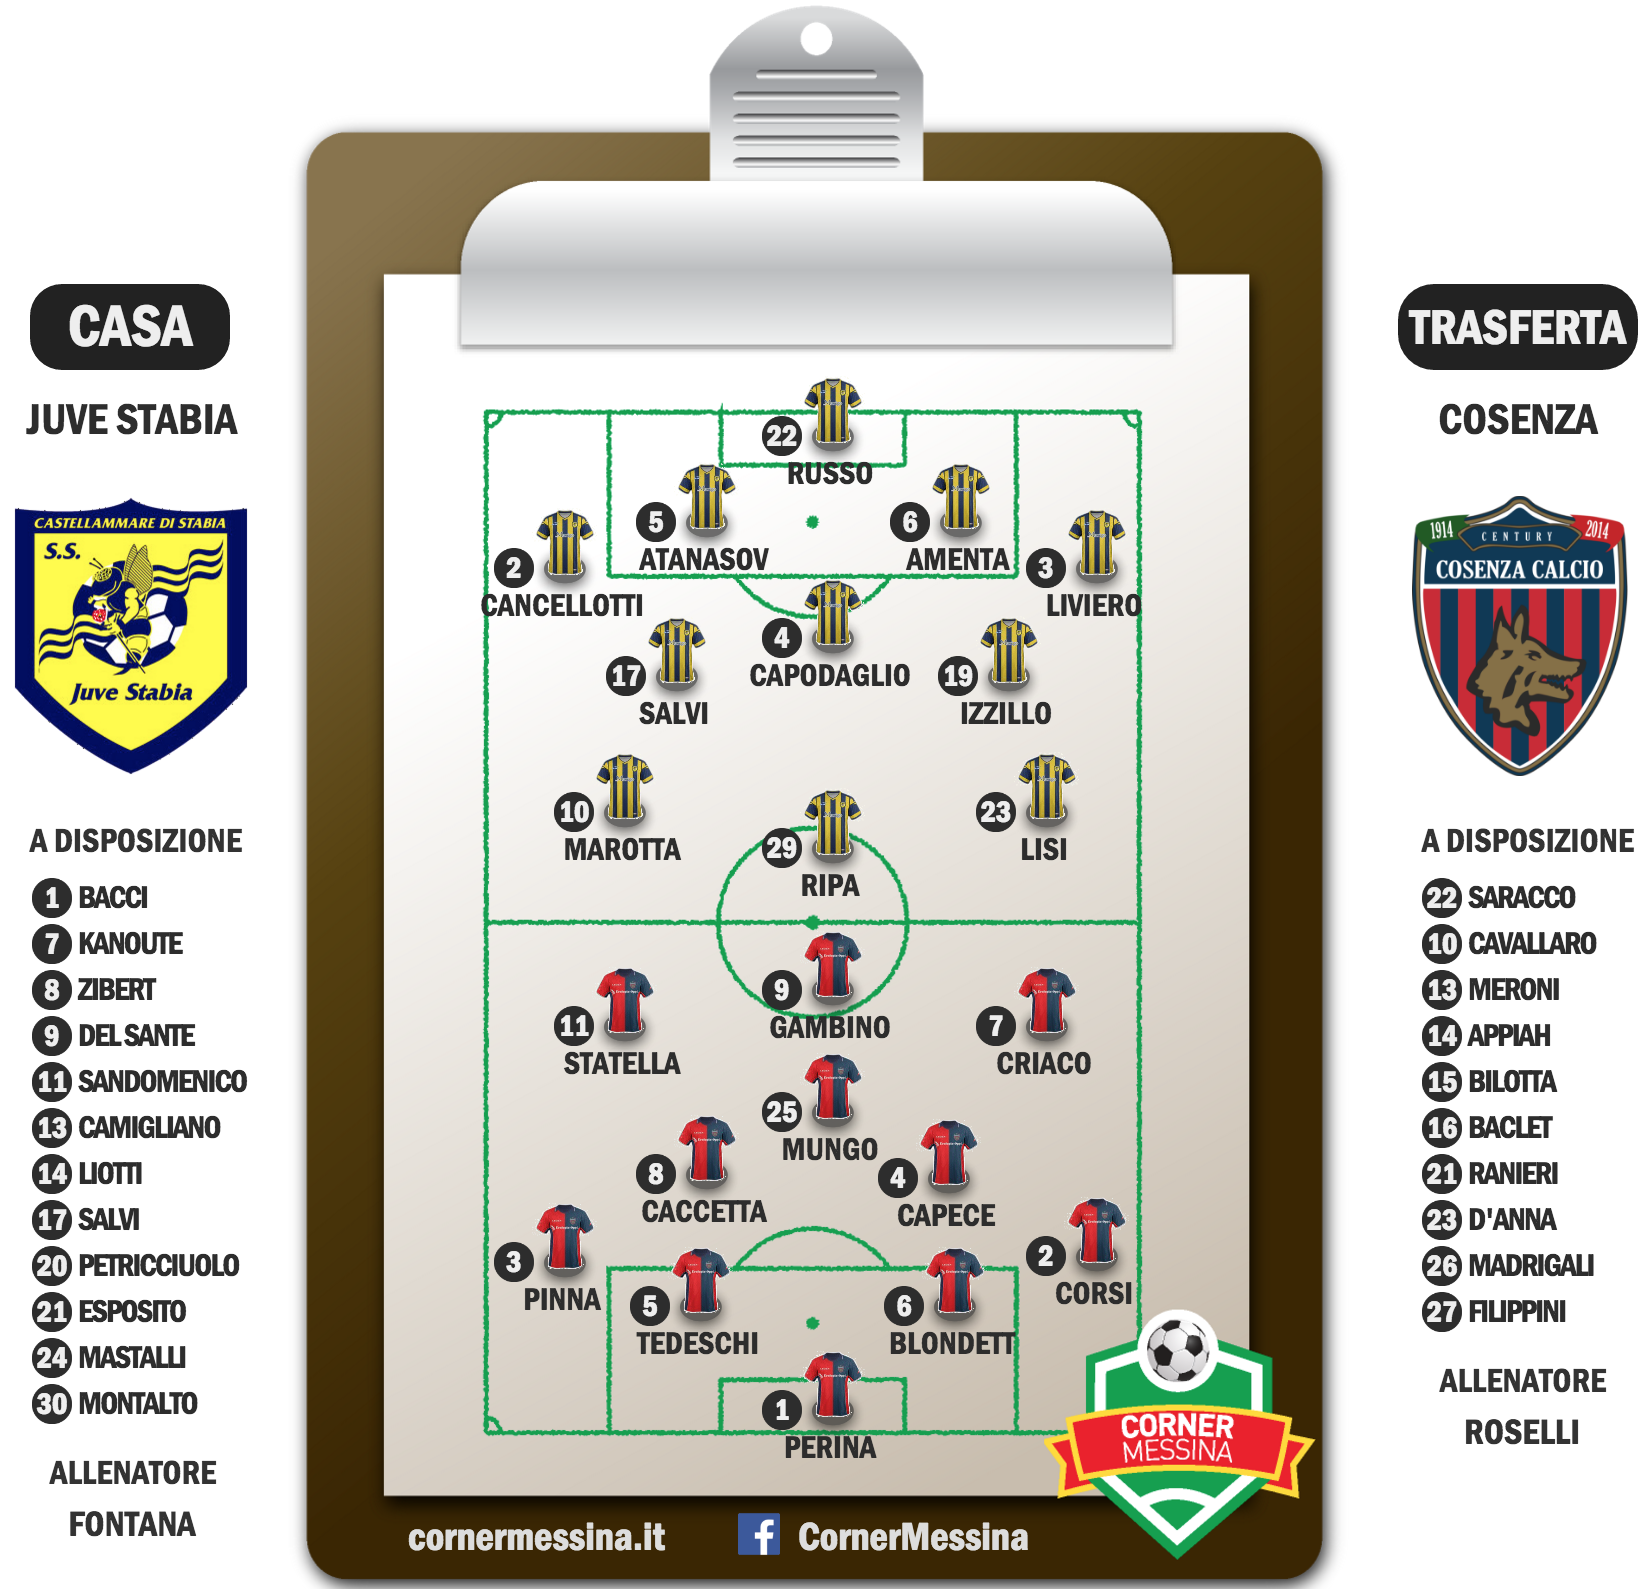 juve-stabia-cosenza